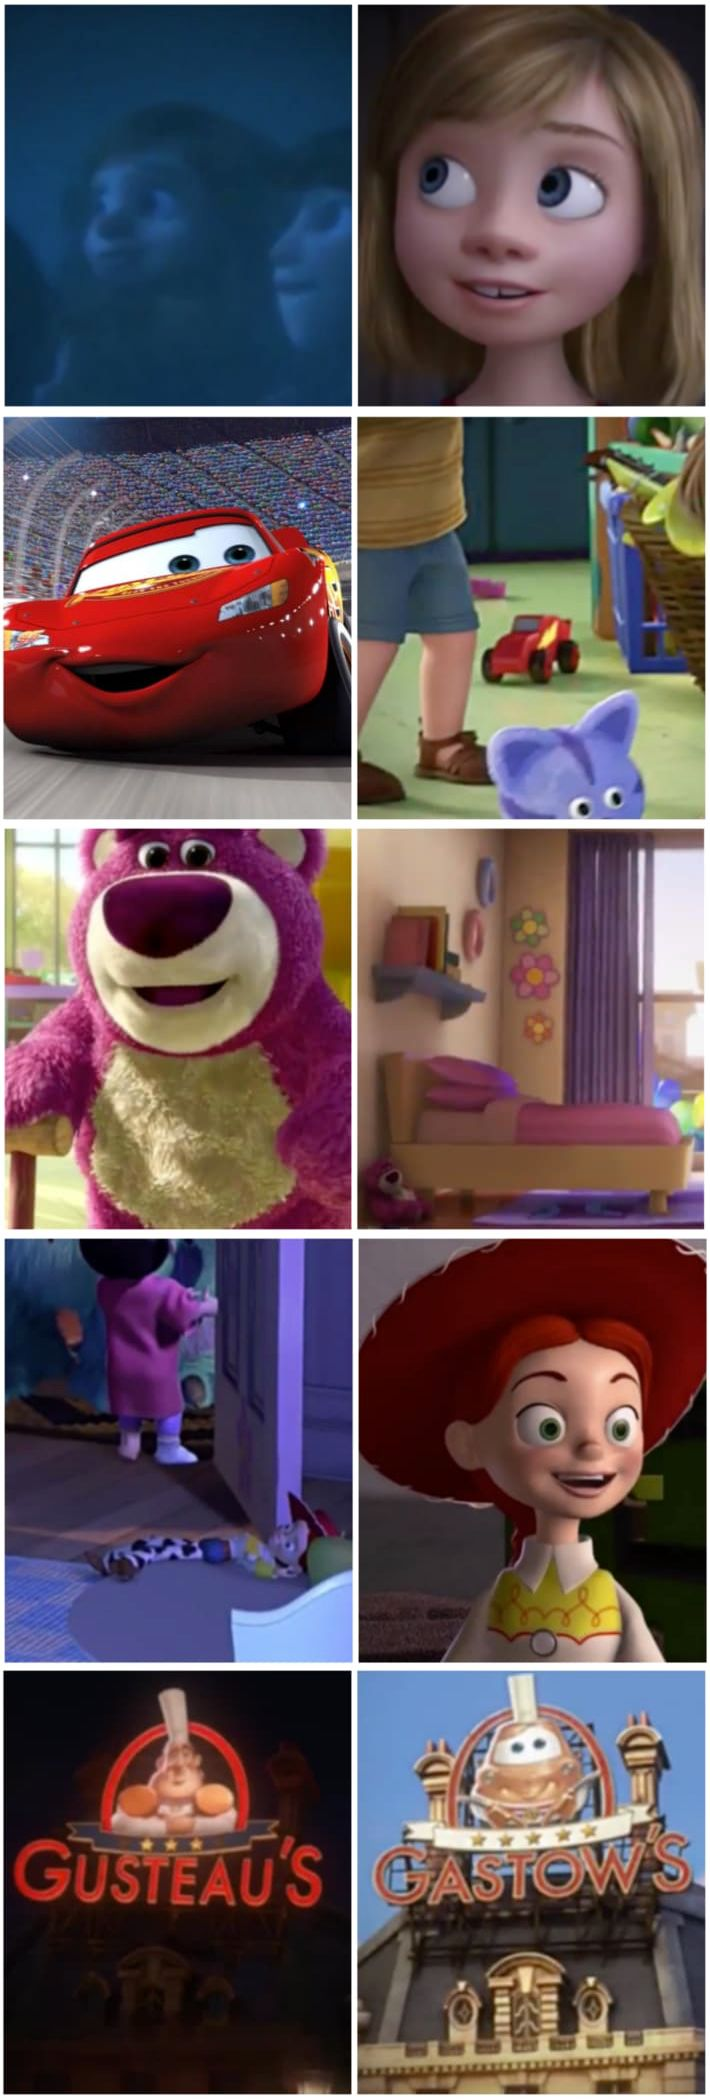 Disney Video Confirms Theory That All Pixar Films Are Connected - Pixar movies connected